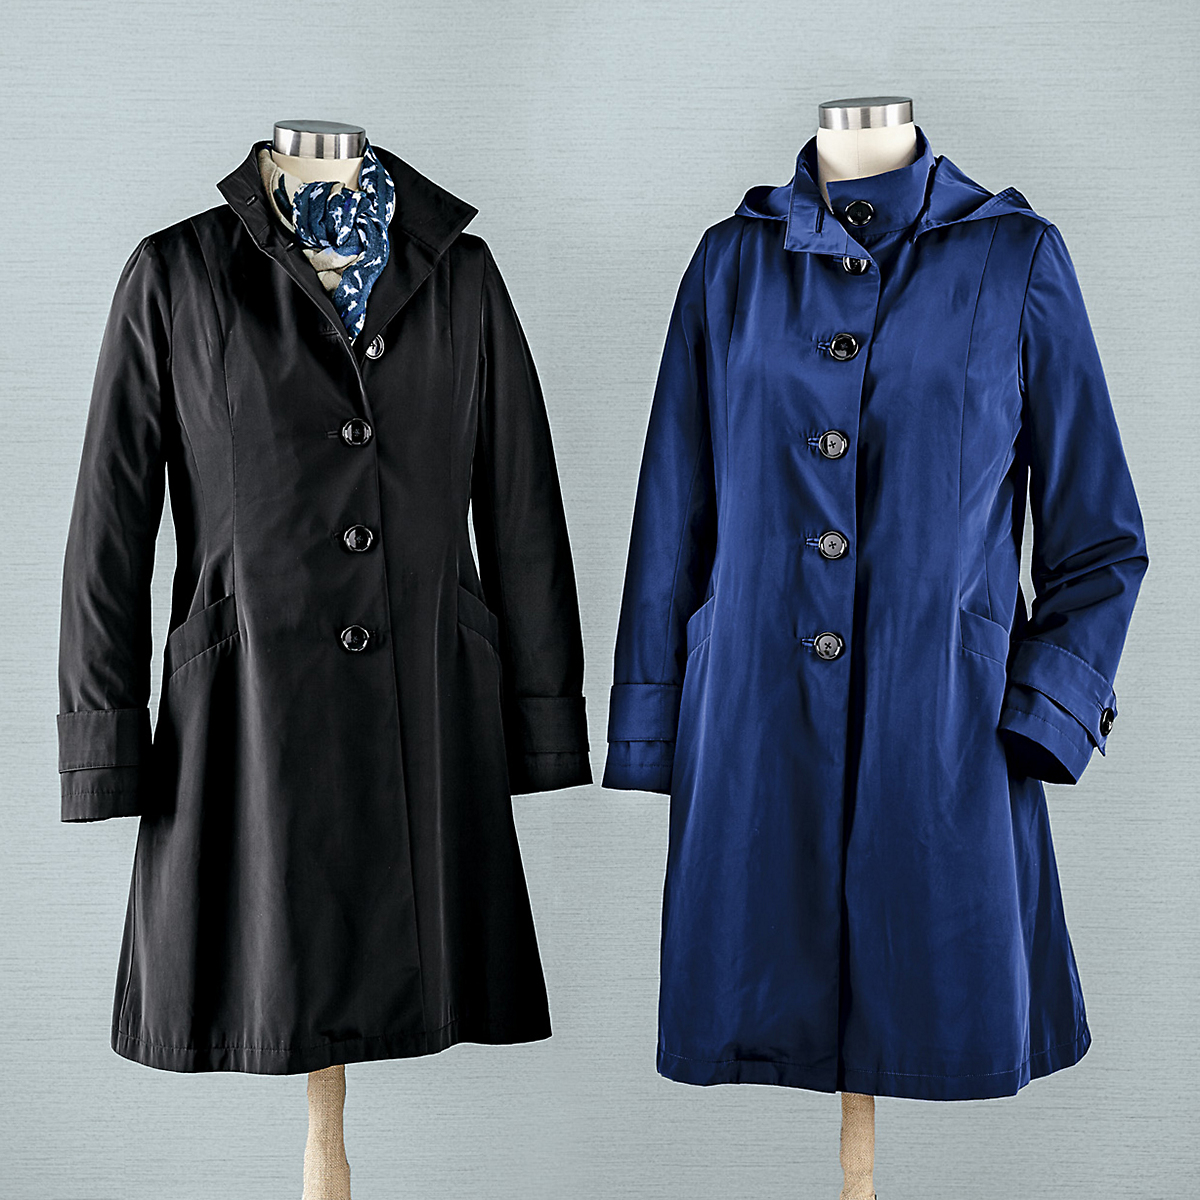 5 Best Waterproof Jackets - Oct. - BestReviewsGet Free Shipping· Get the Best Price· Trusted Reviews· From the Experts.